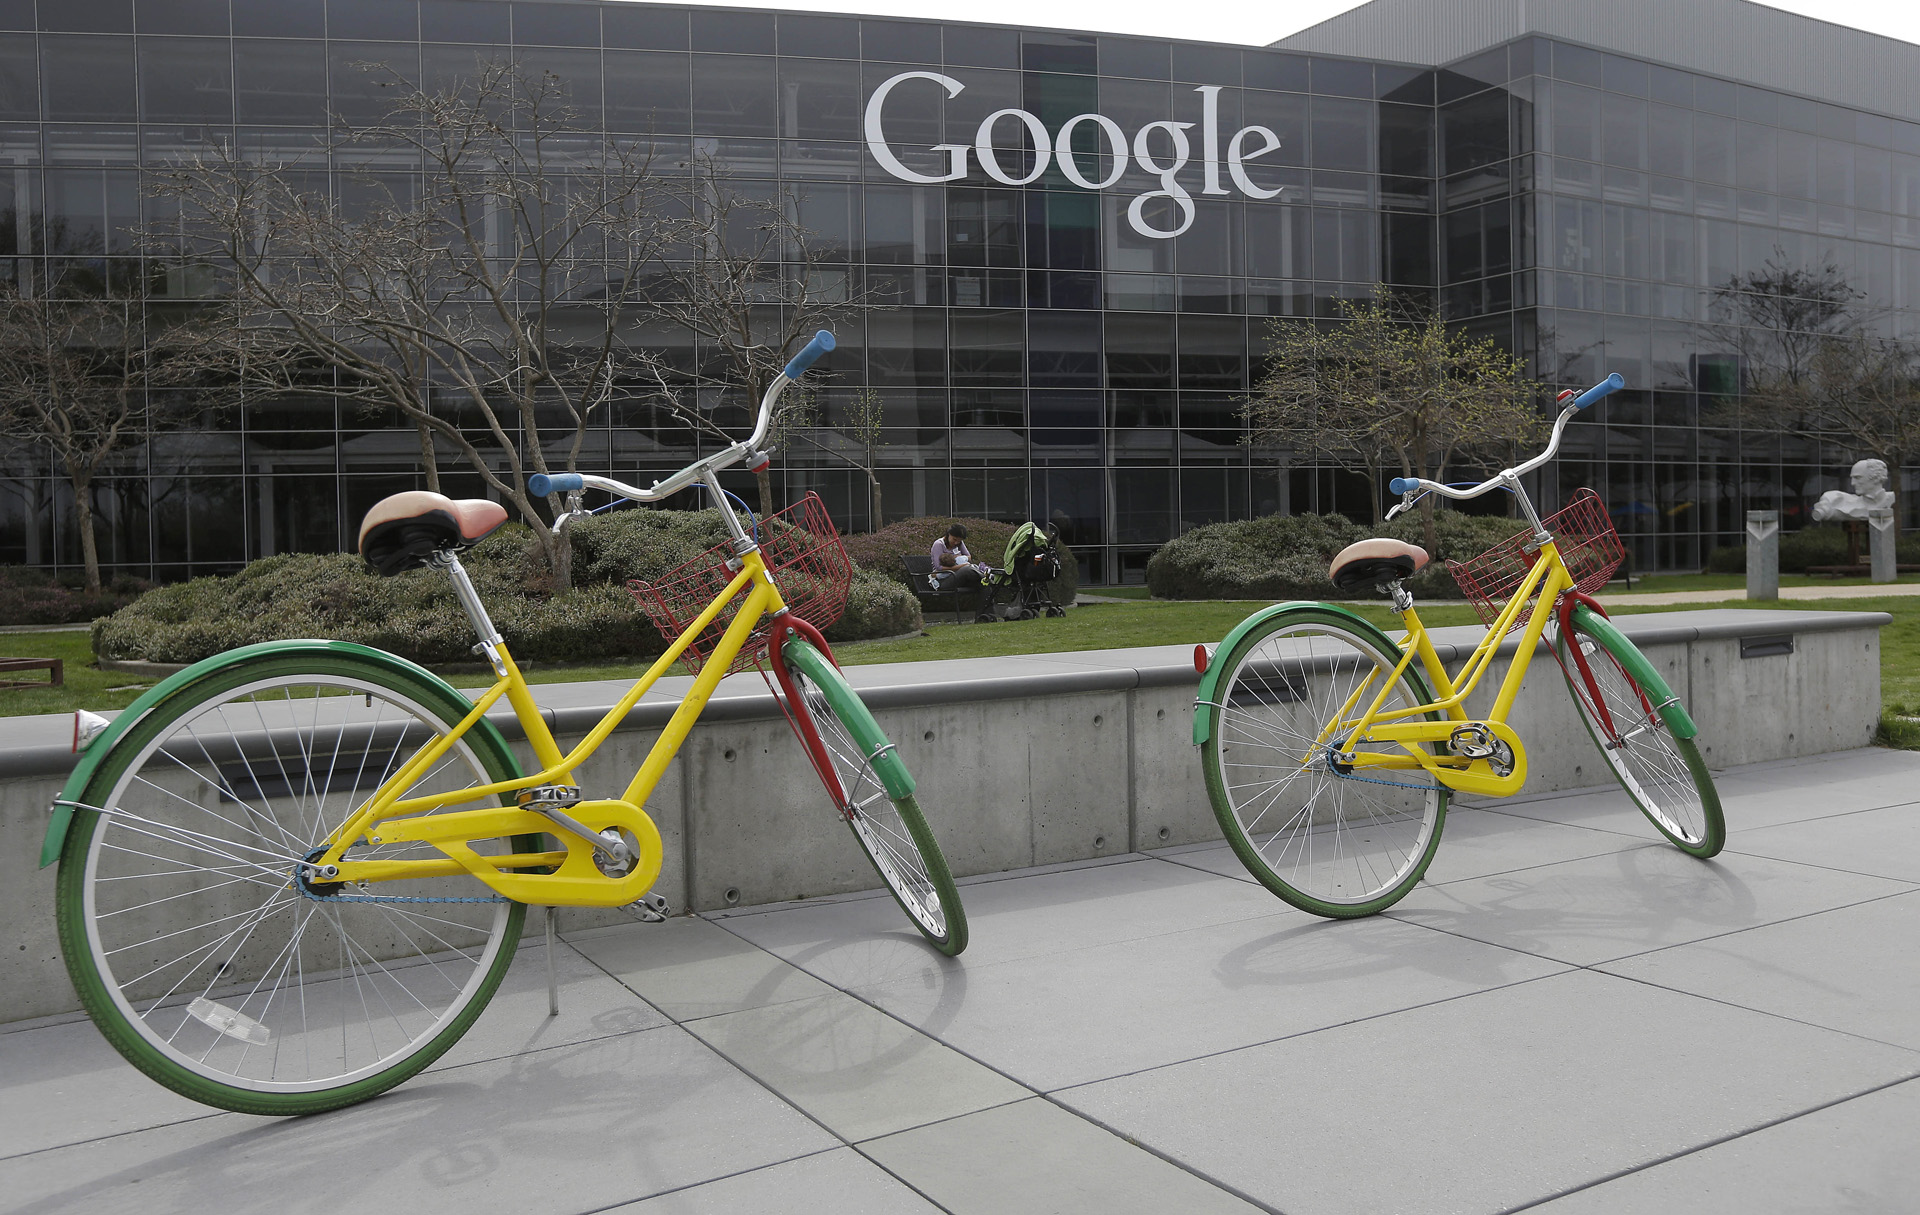 Google wallpaper, building and bicycles